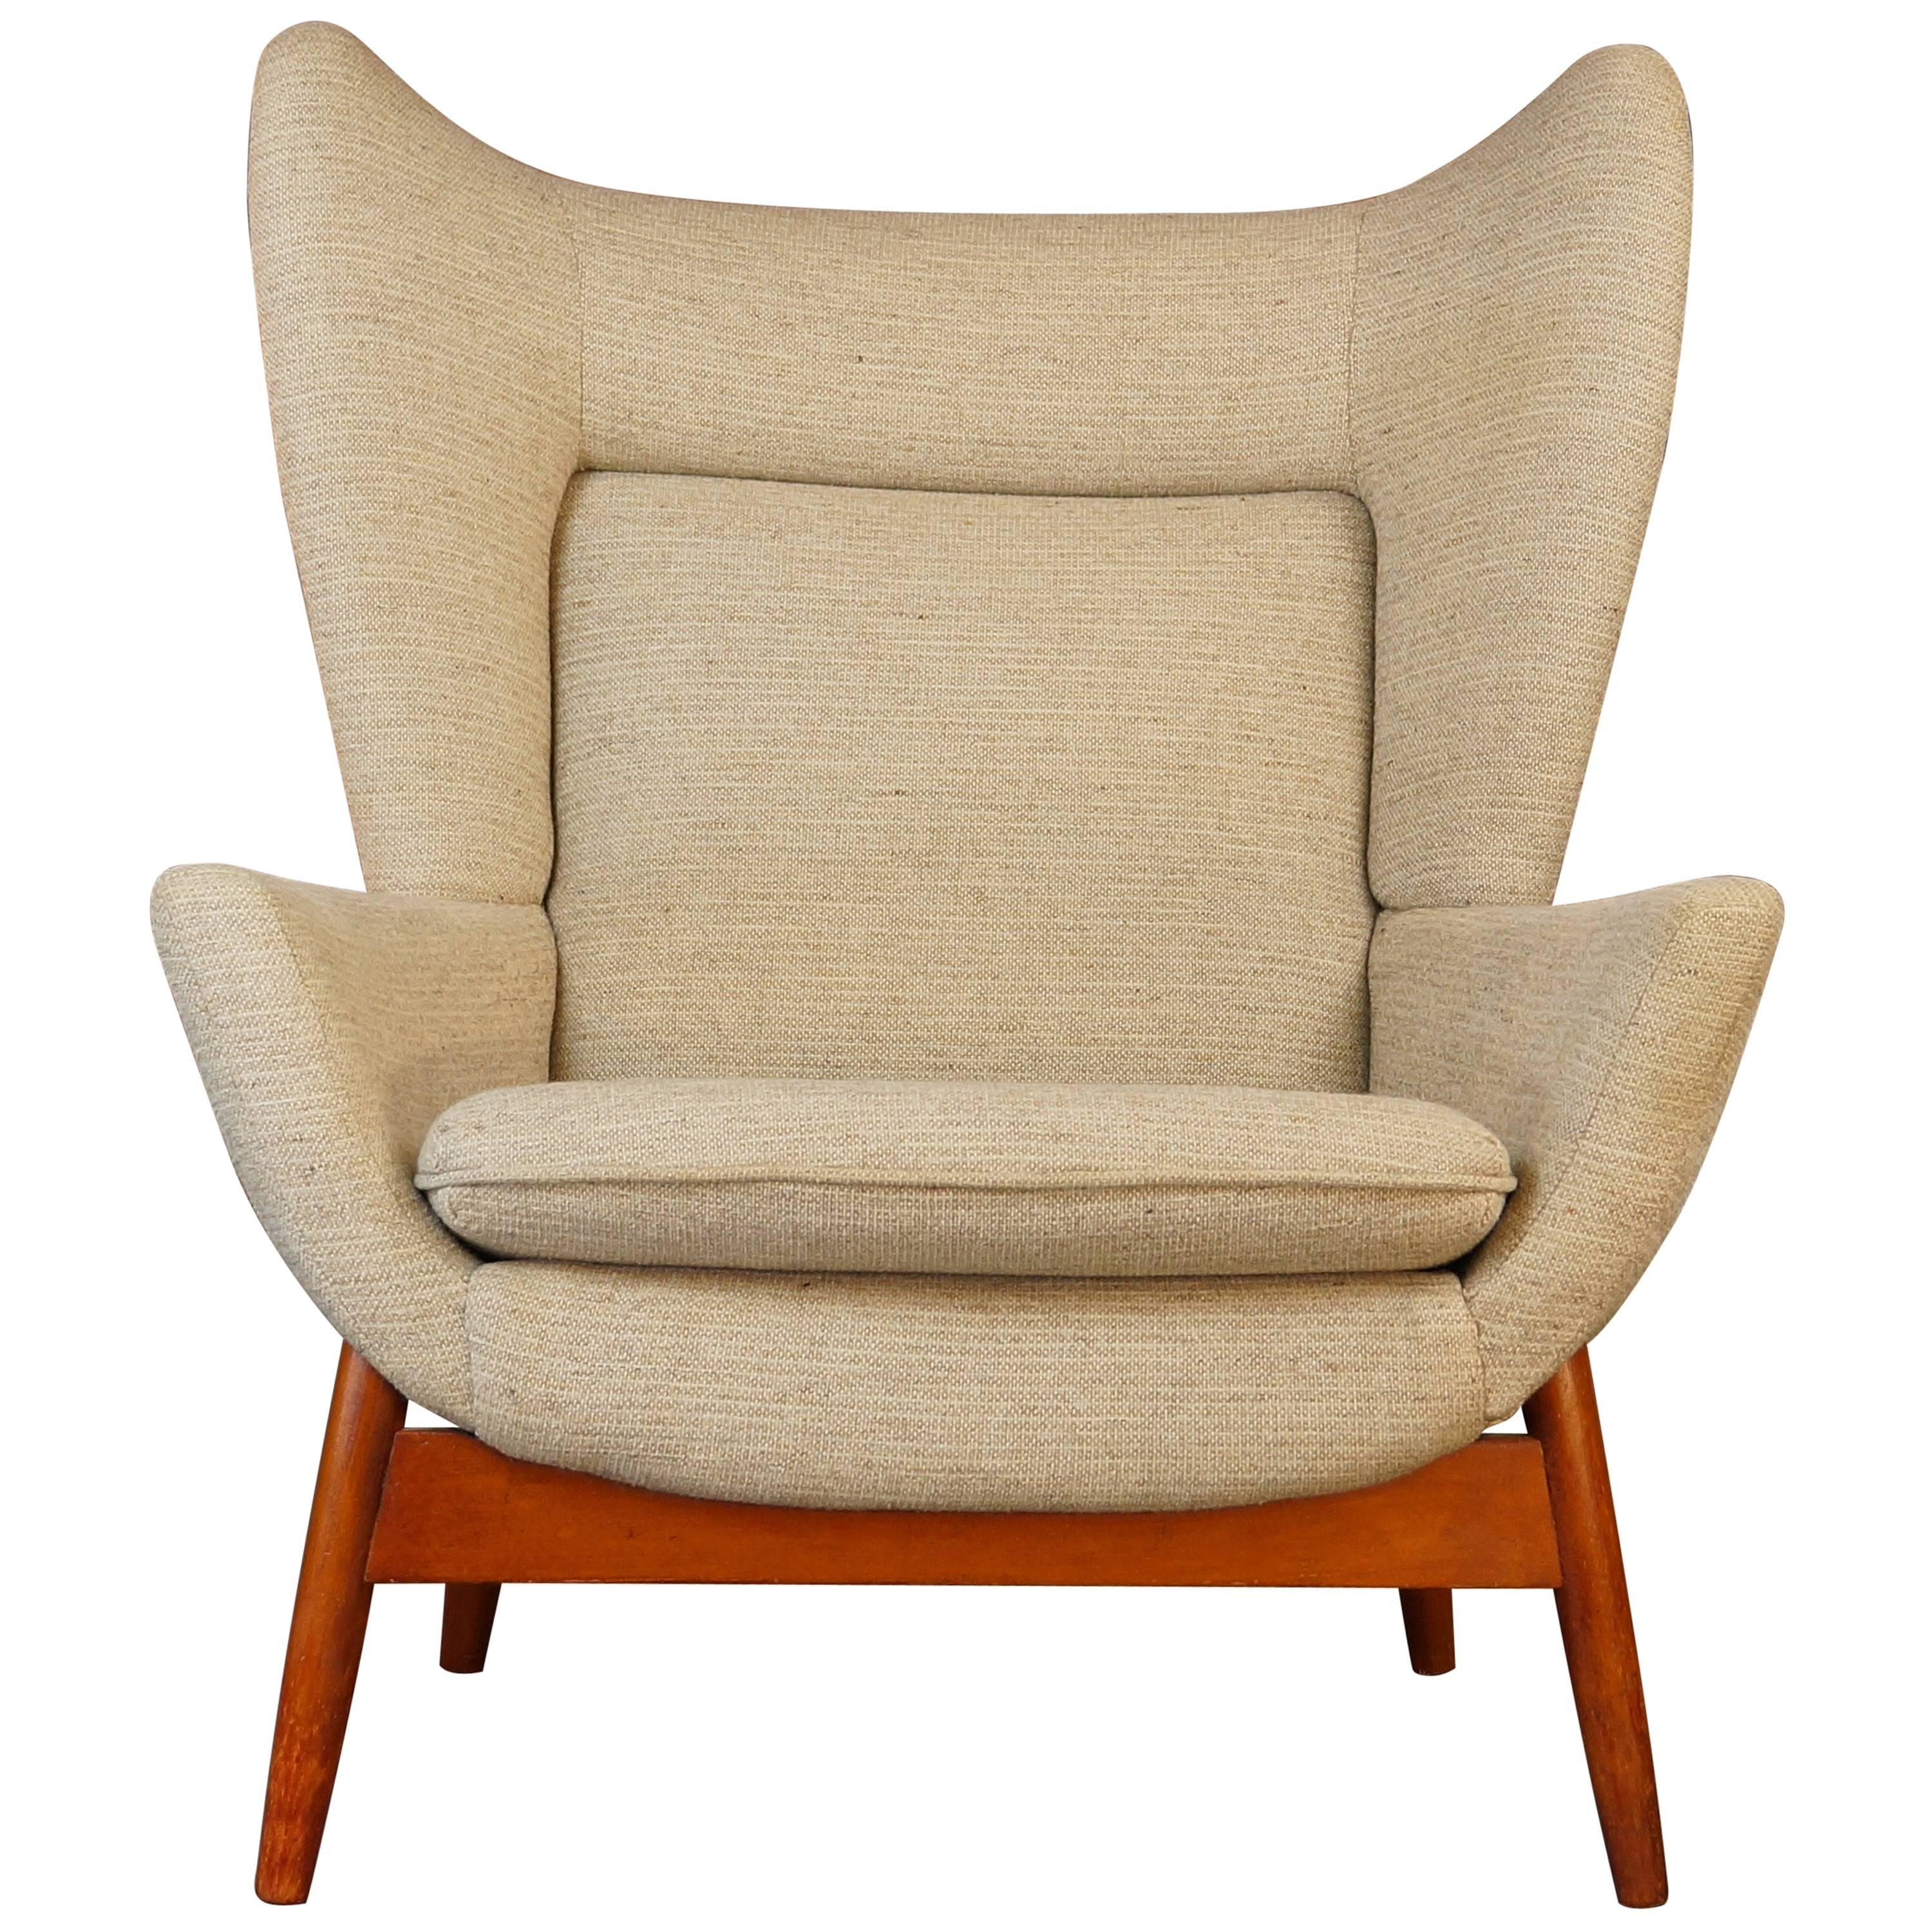 Vintage 1960s Parker Knoll Merrywood Wingback Armchair  Papa Bear  ...  sc 1 st  1stDibs & Vintage 1960s Parker Knoll Merrywood Wingback Armchair